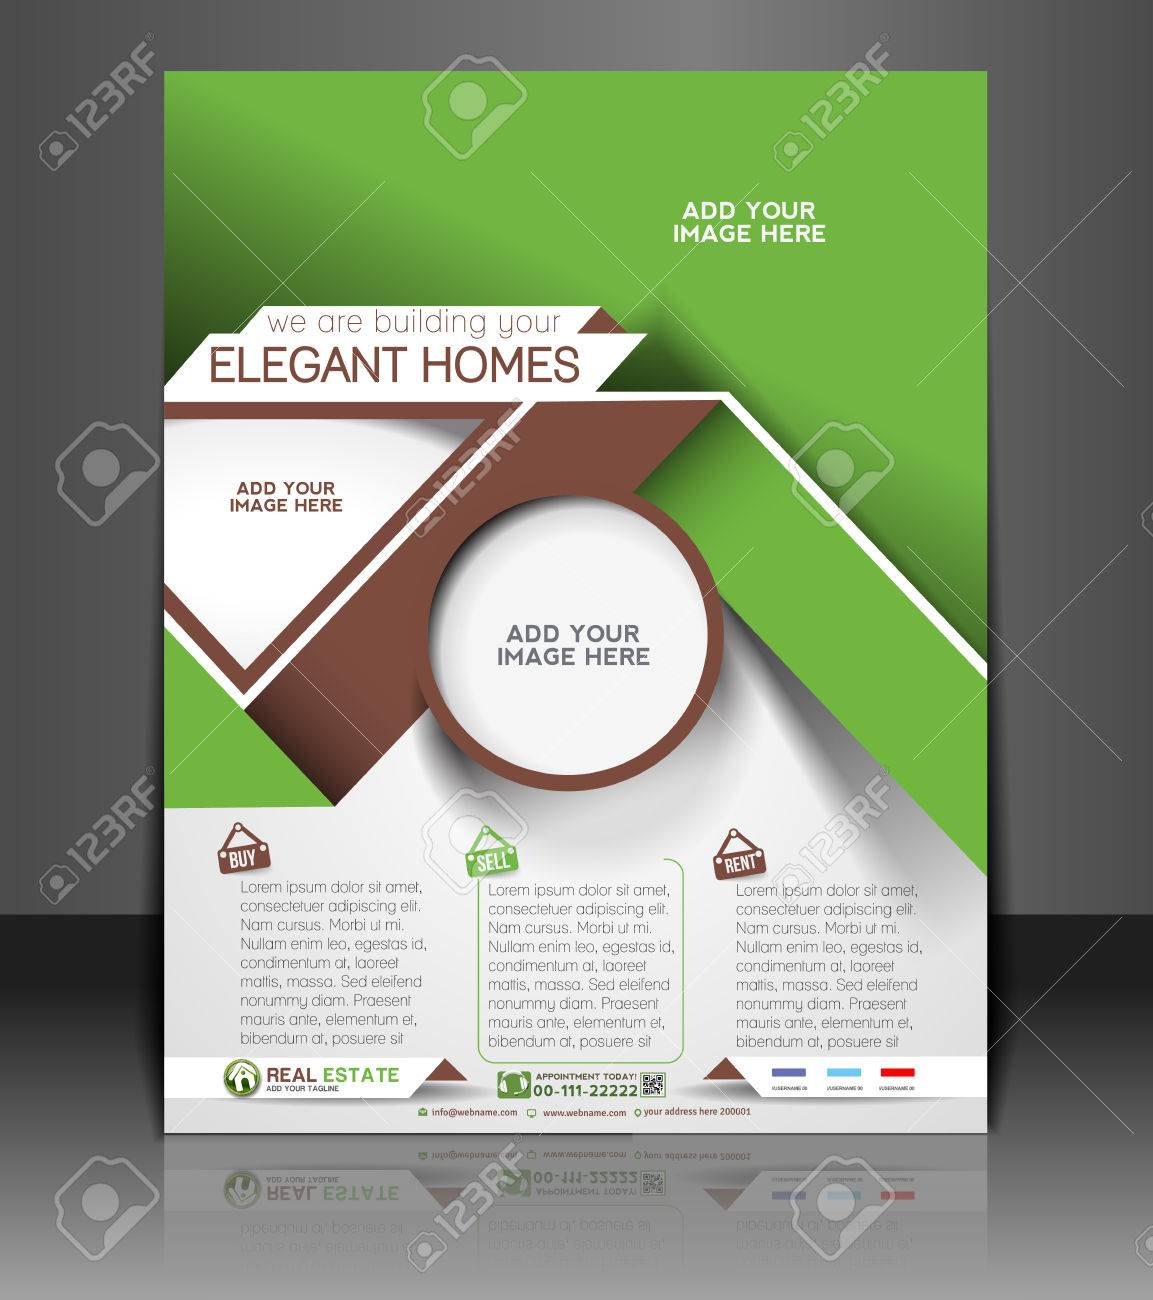 real estate agent flyer poster template royalty cliparts real estate agent flyer poster template stock vector 26974844